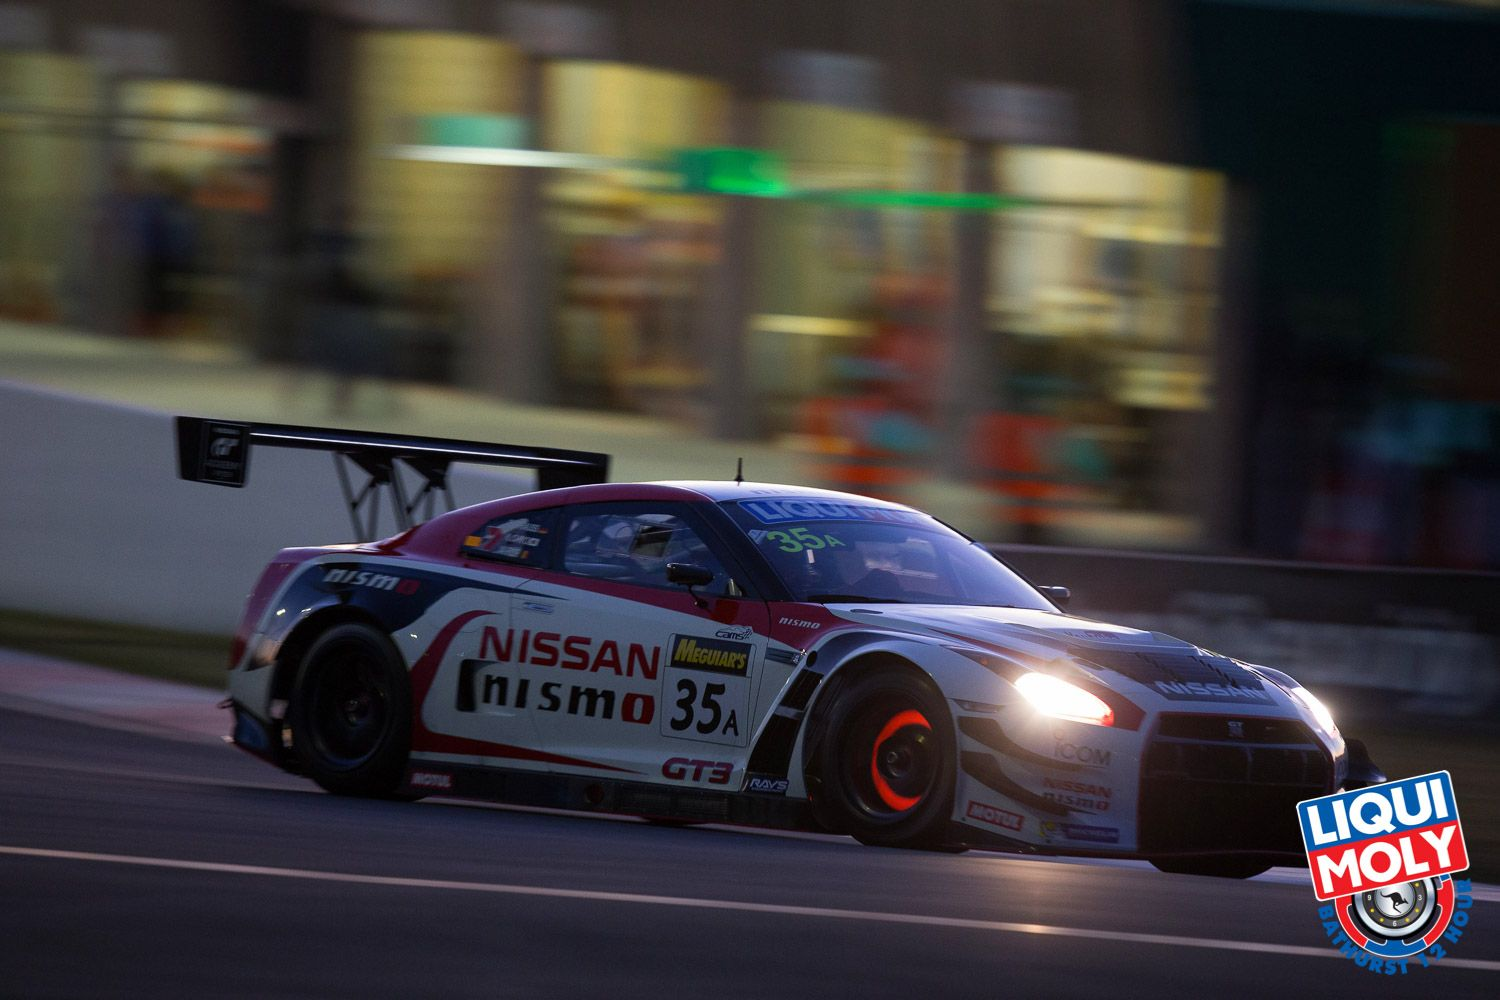 Nismo GTR at Bathust 2015